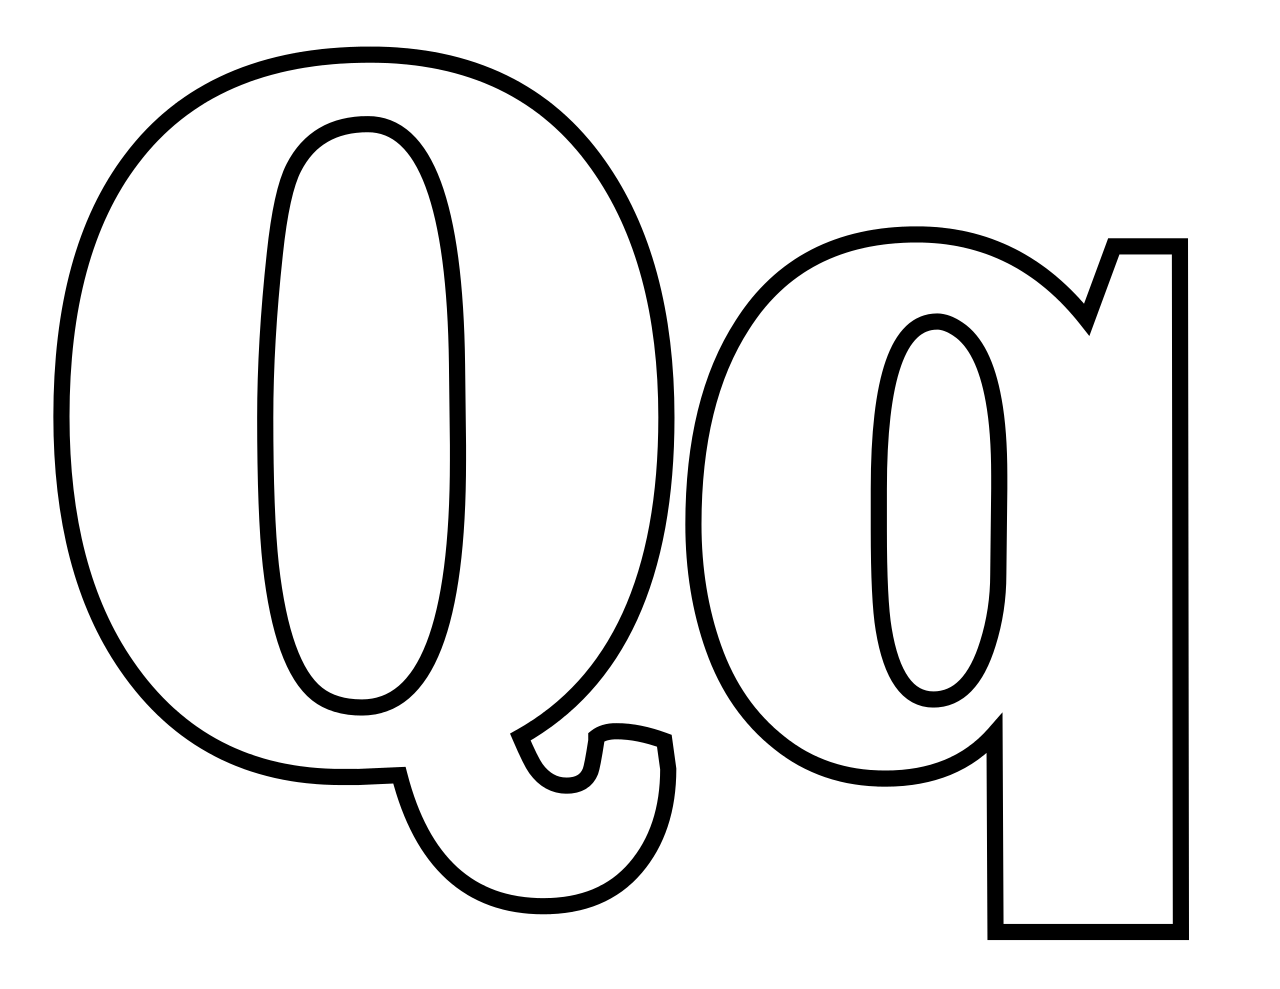 coloring page q letter q coloring pages at getcoloringscom free coloring q page